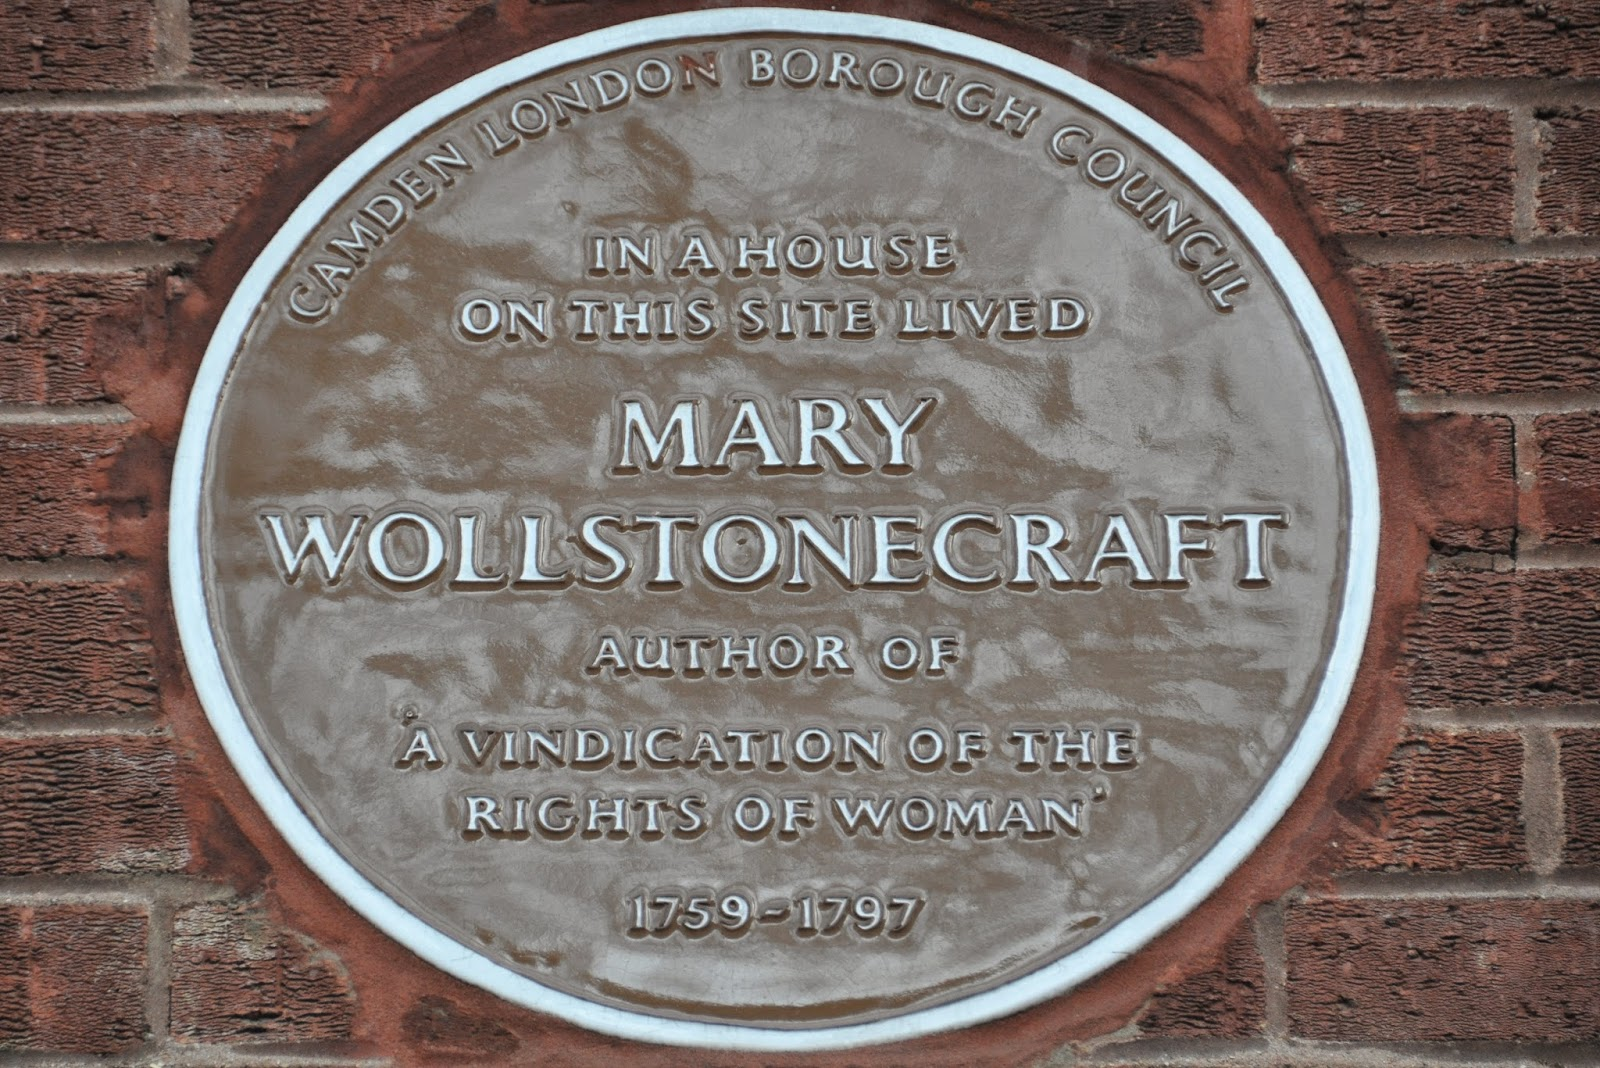 mary wollstonecraft virginia woolf Mary wollstonecraft was an english writer mary shelley author simone de virginia woolf author wikipedia content from the wikipedia article mary.